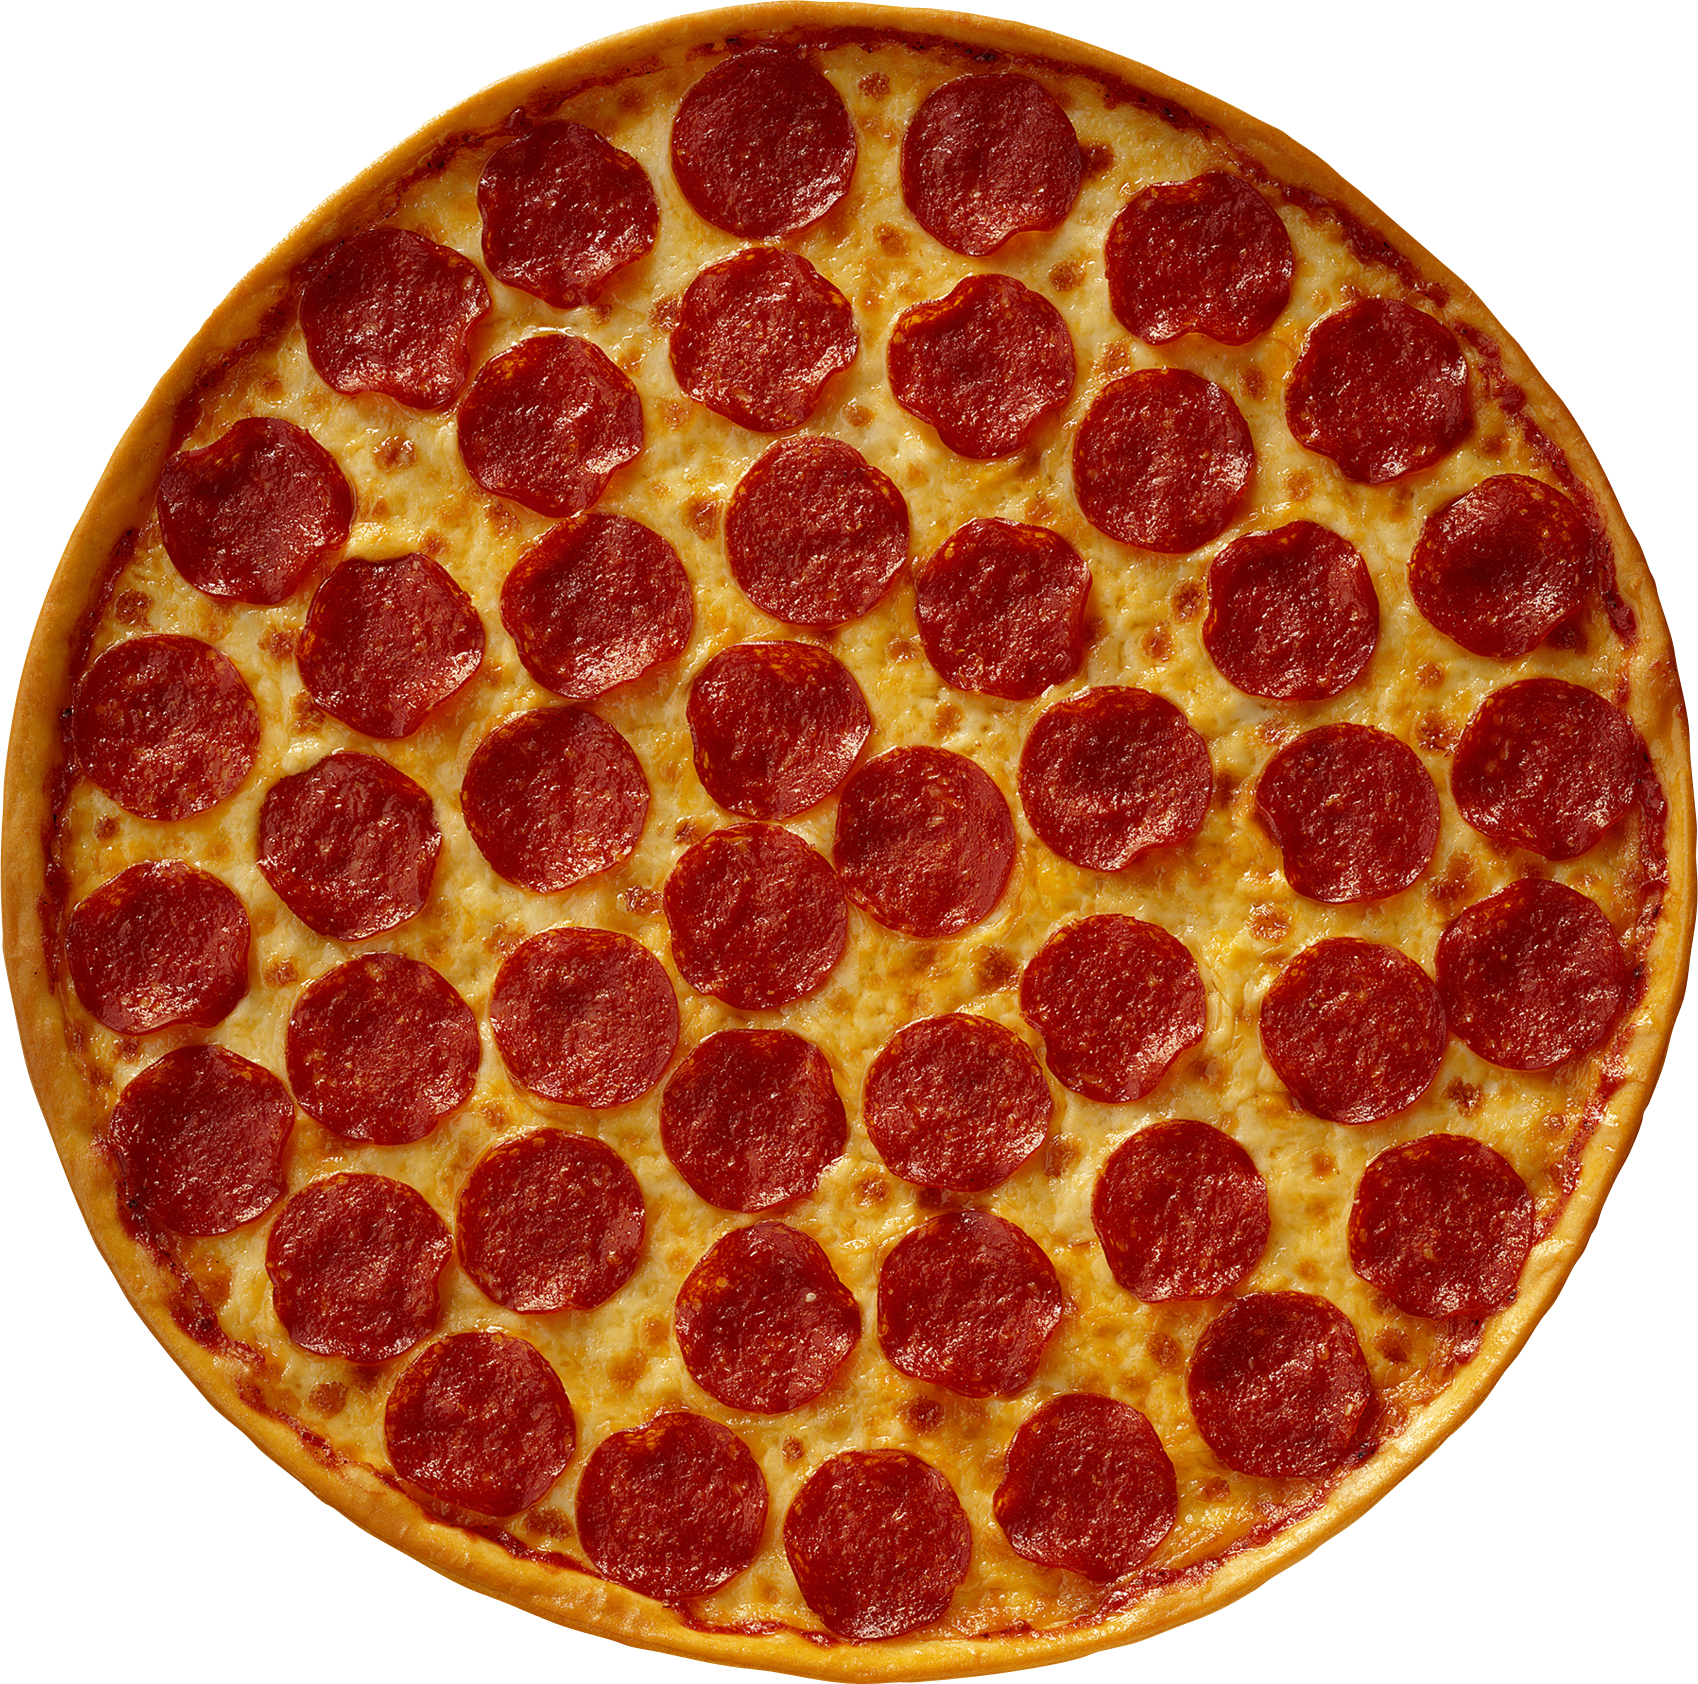 Pizza clipart full pizza, Pizza full pizza Transparent FREE.